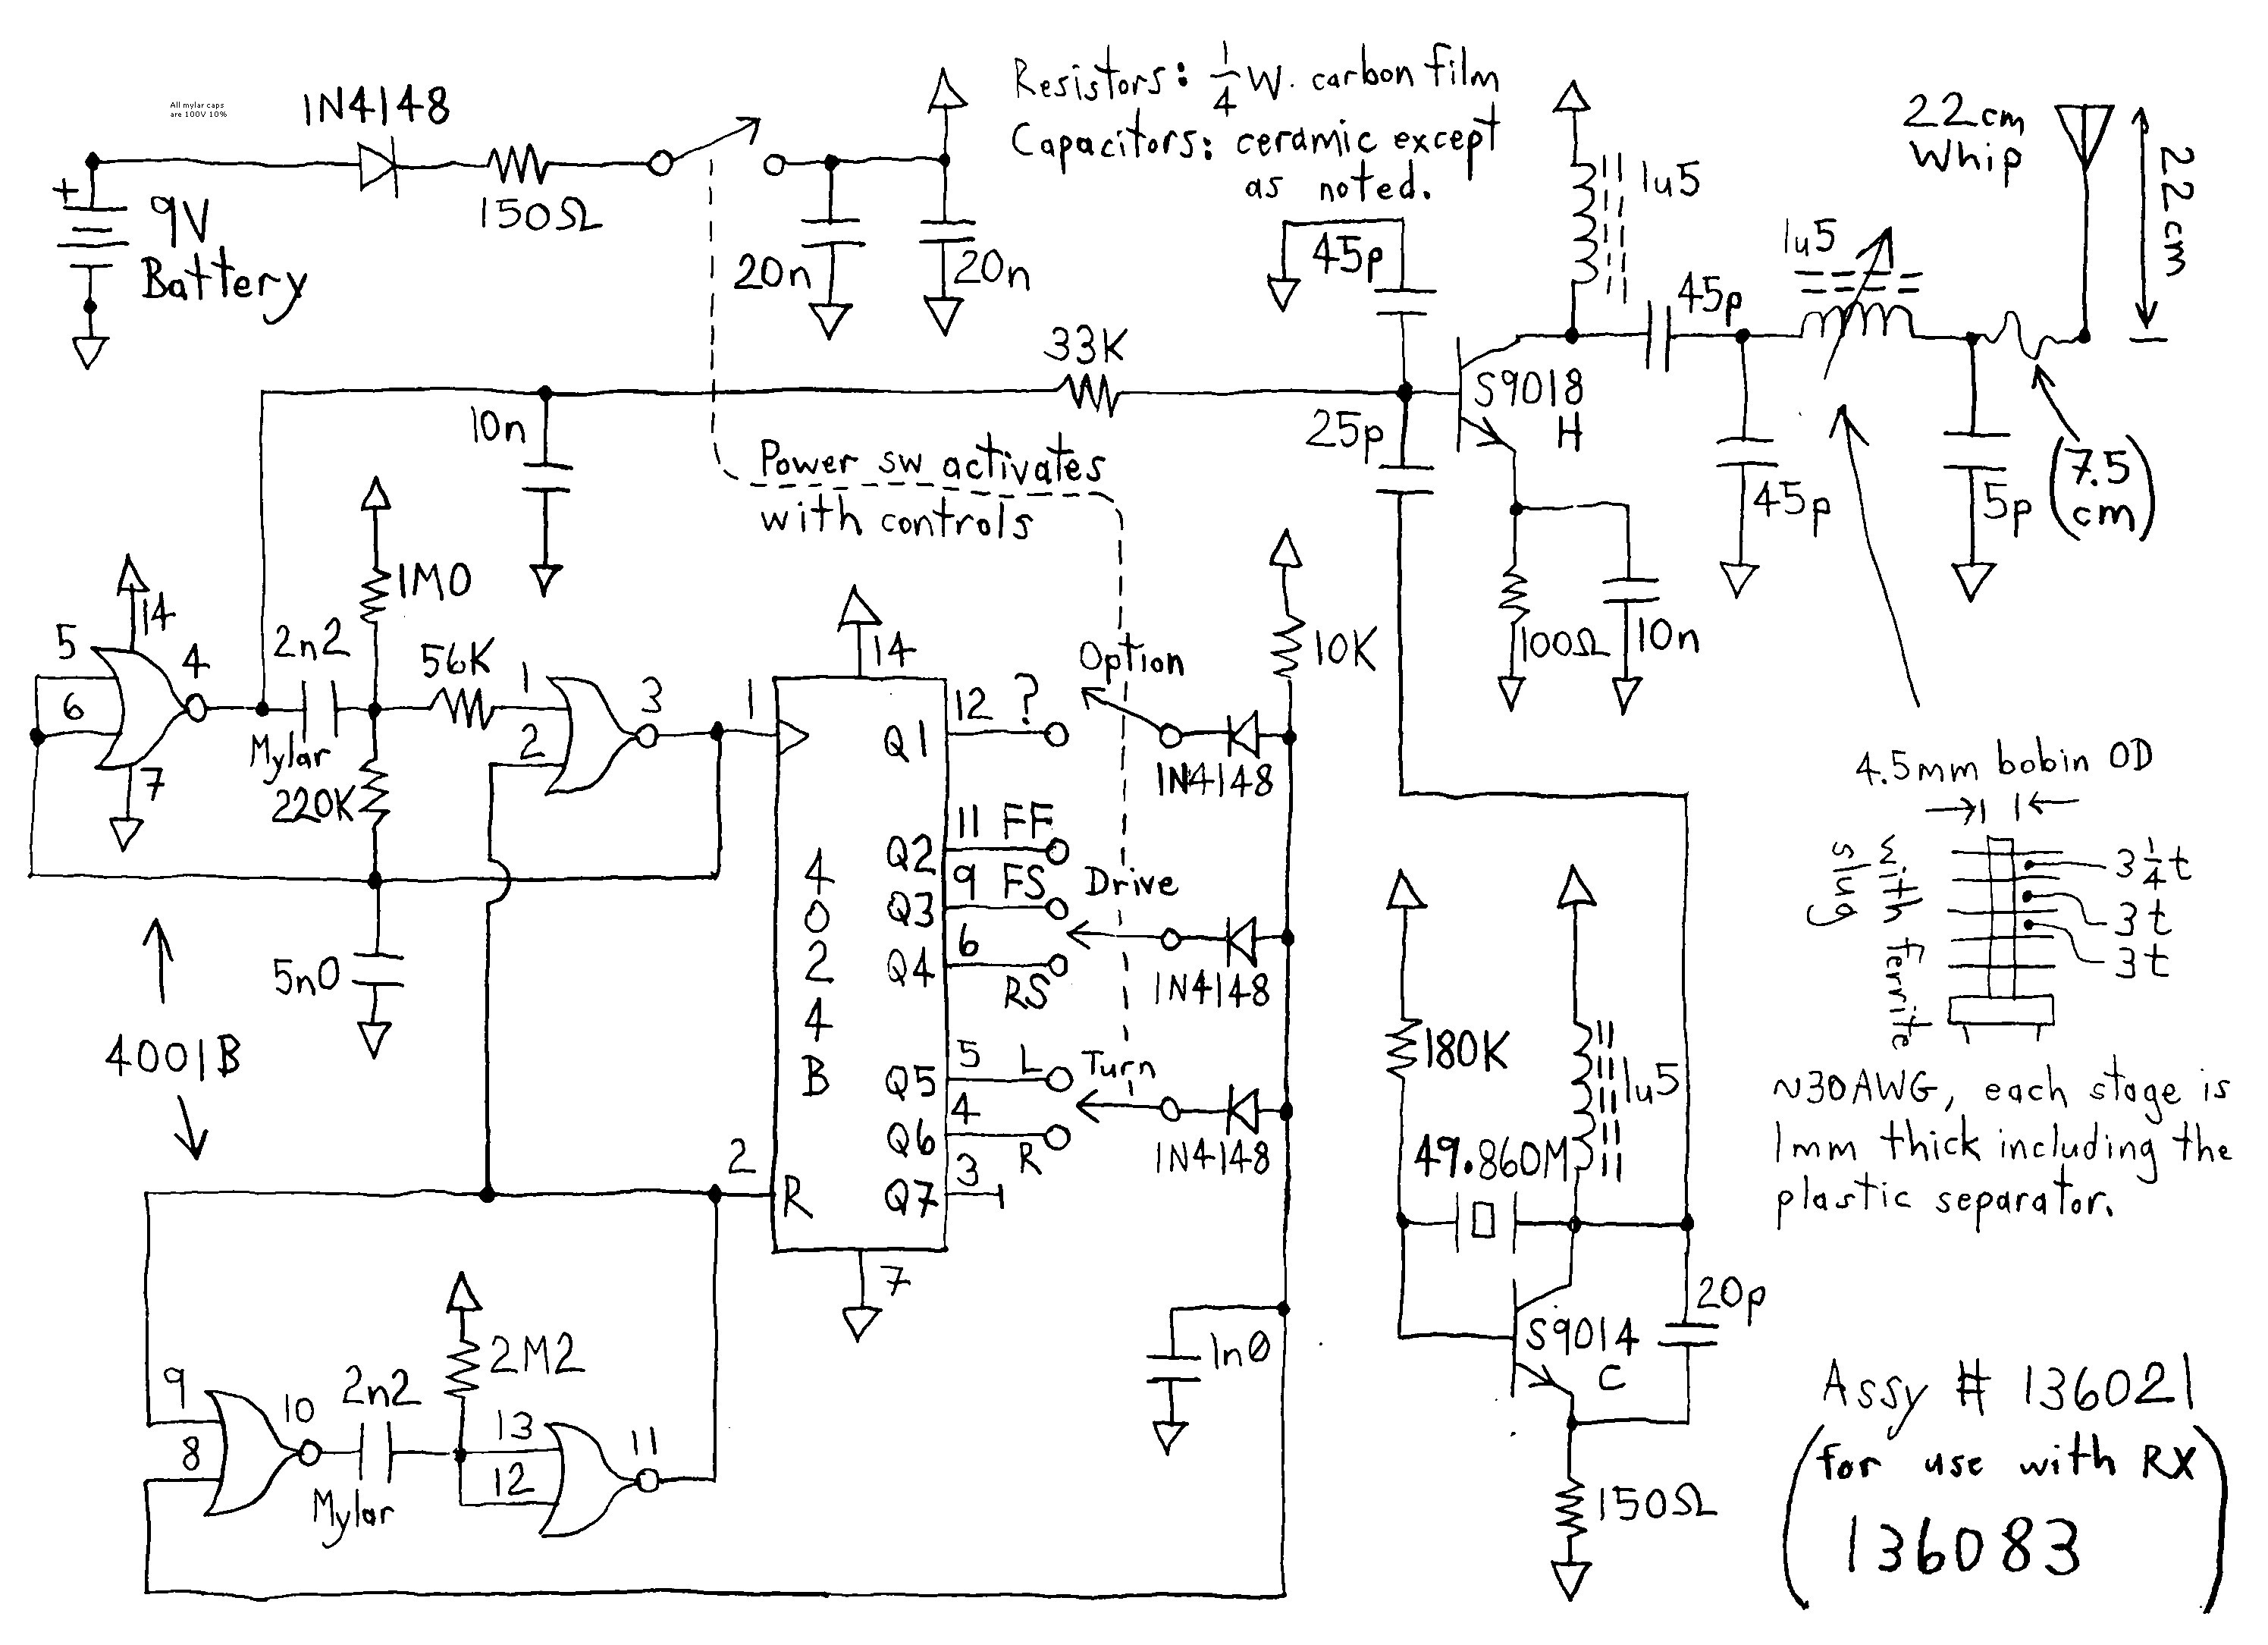 Toy Car Circuit Diagram Wireless Remote Control Car Circuit Diagram Wireless toy Car Circuit Of Toy Car Circuit Diagram Trimble 750 Wiring Diagram Valid Wiring Diagram for Car Radio Fresh